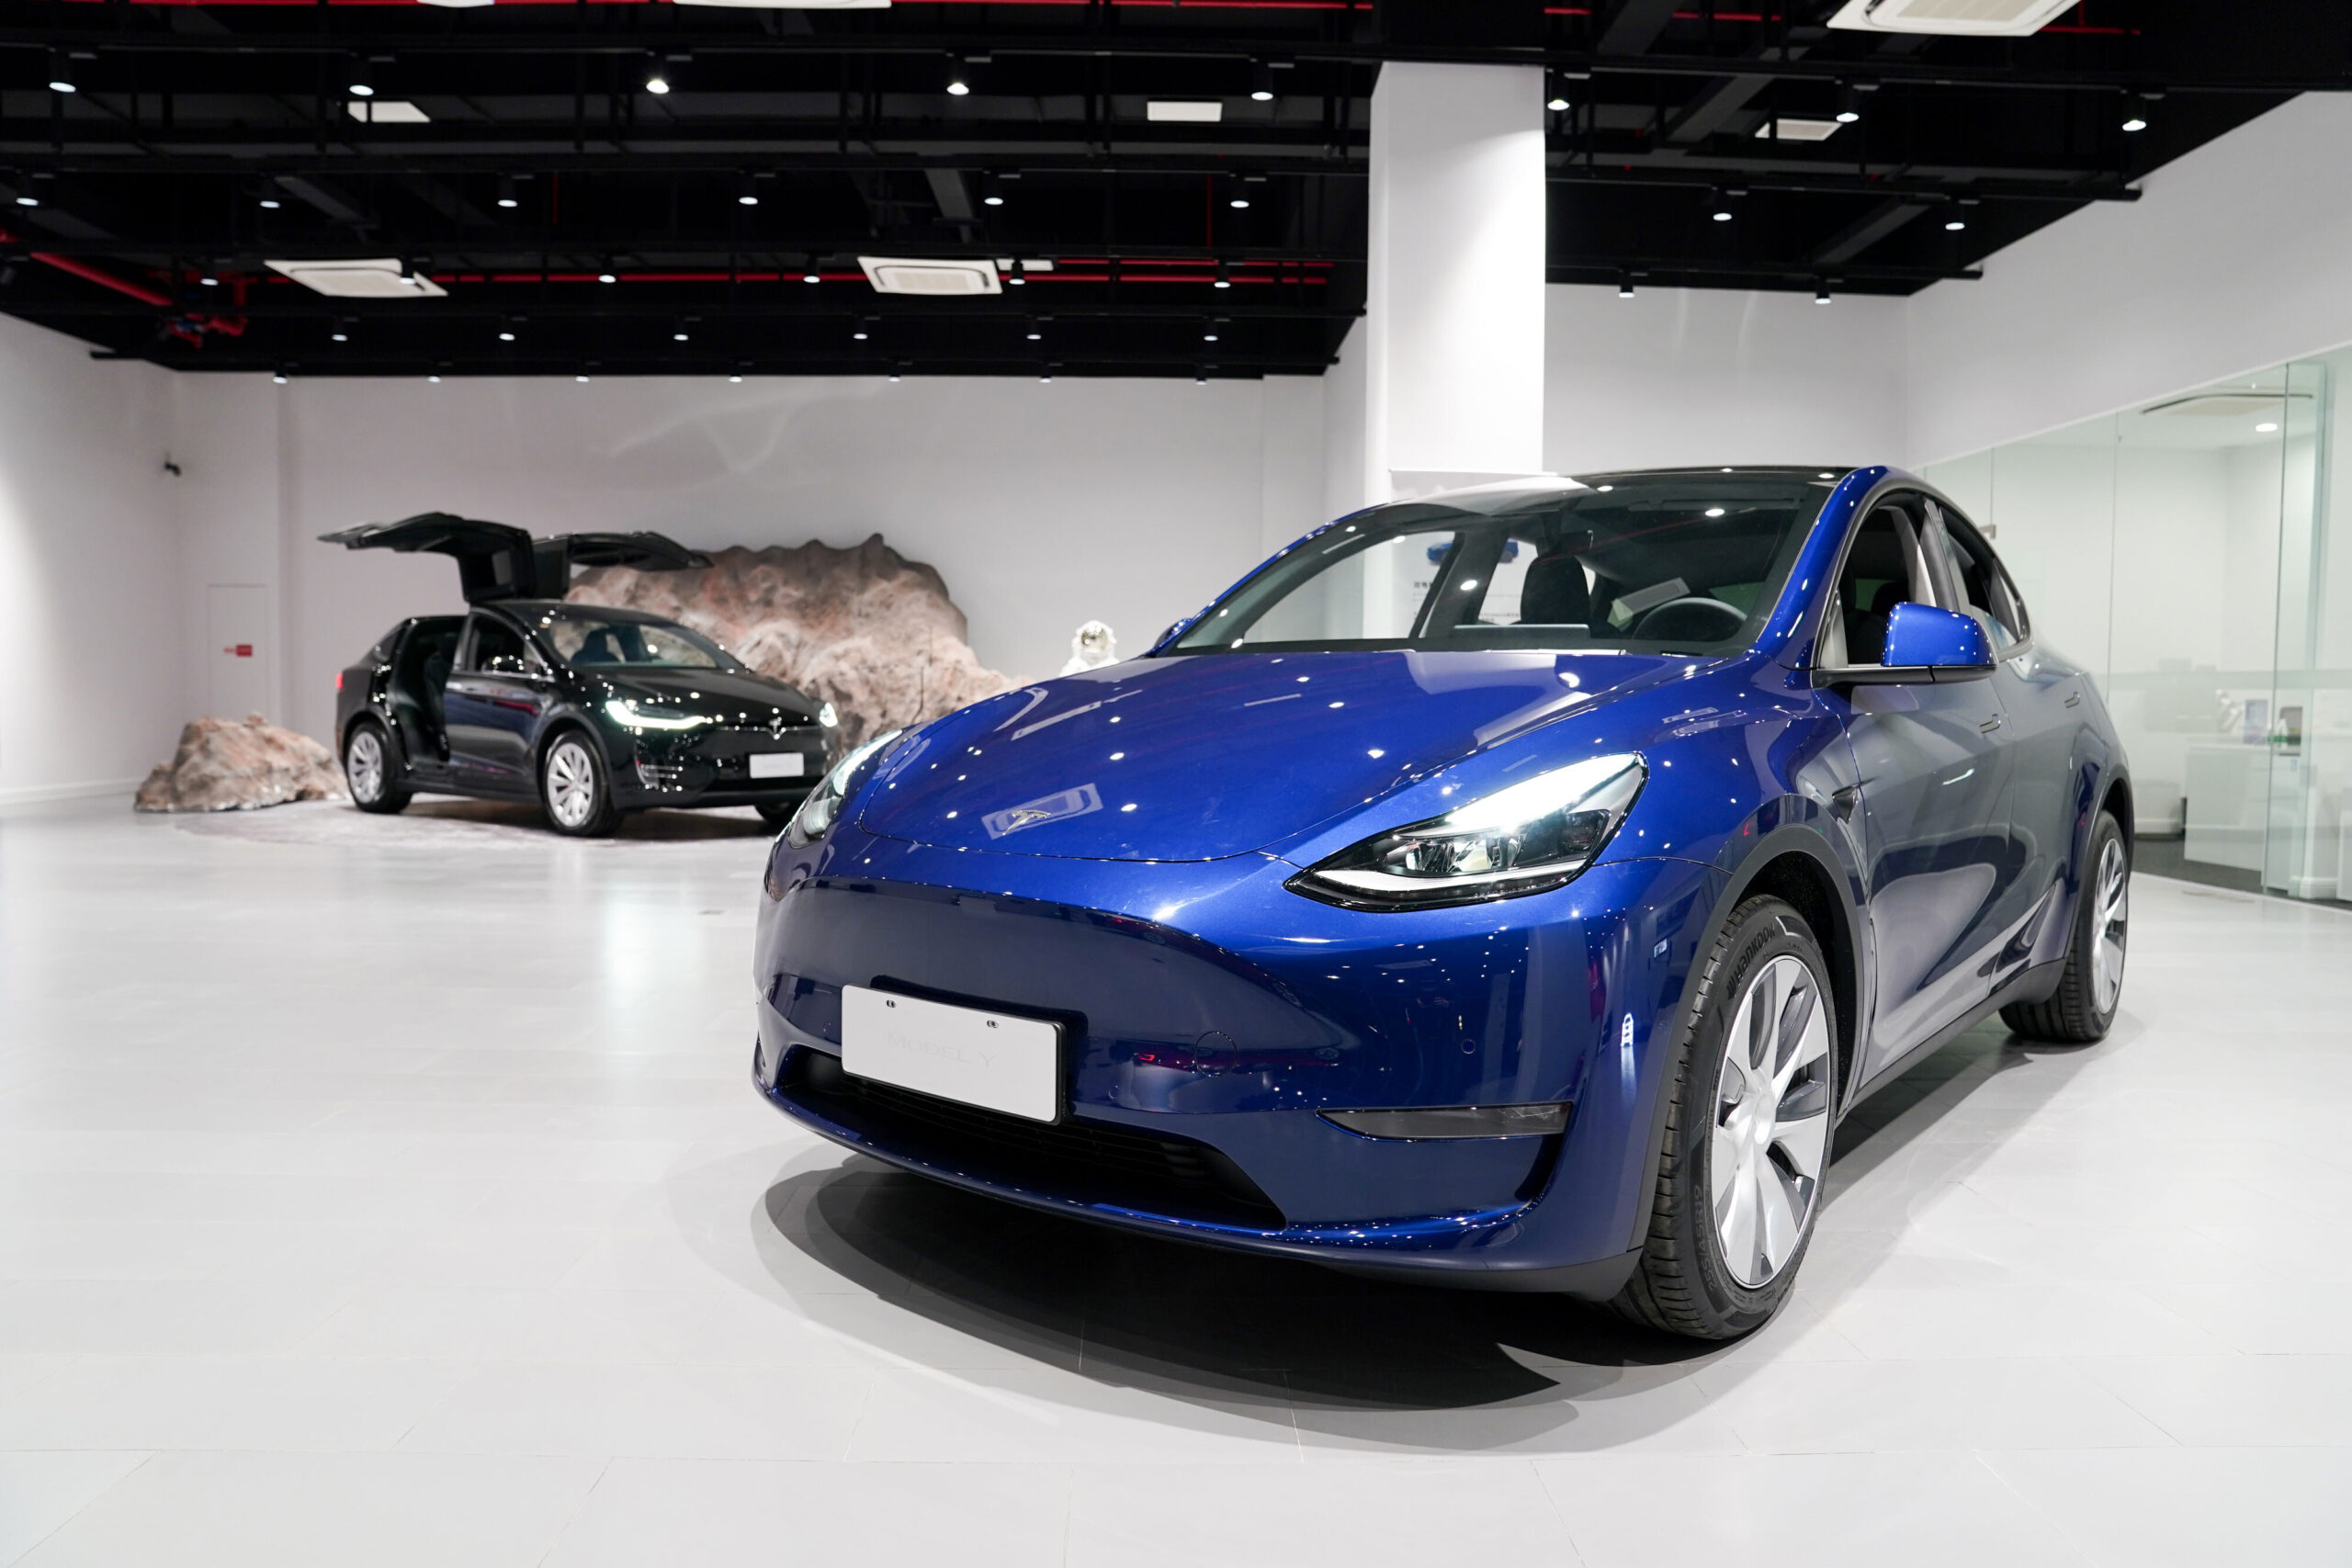 <i>Ding Ting/Xinhua/Zuma</i><br/>Tesla is the most secretive automaker on the planet